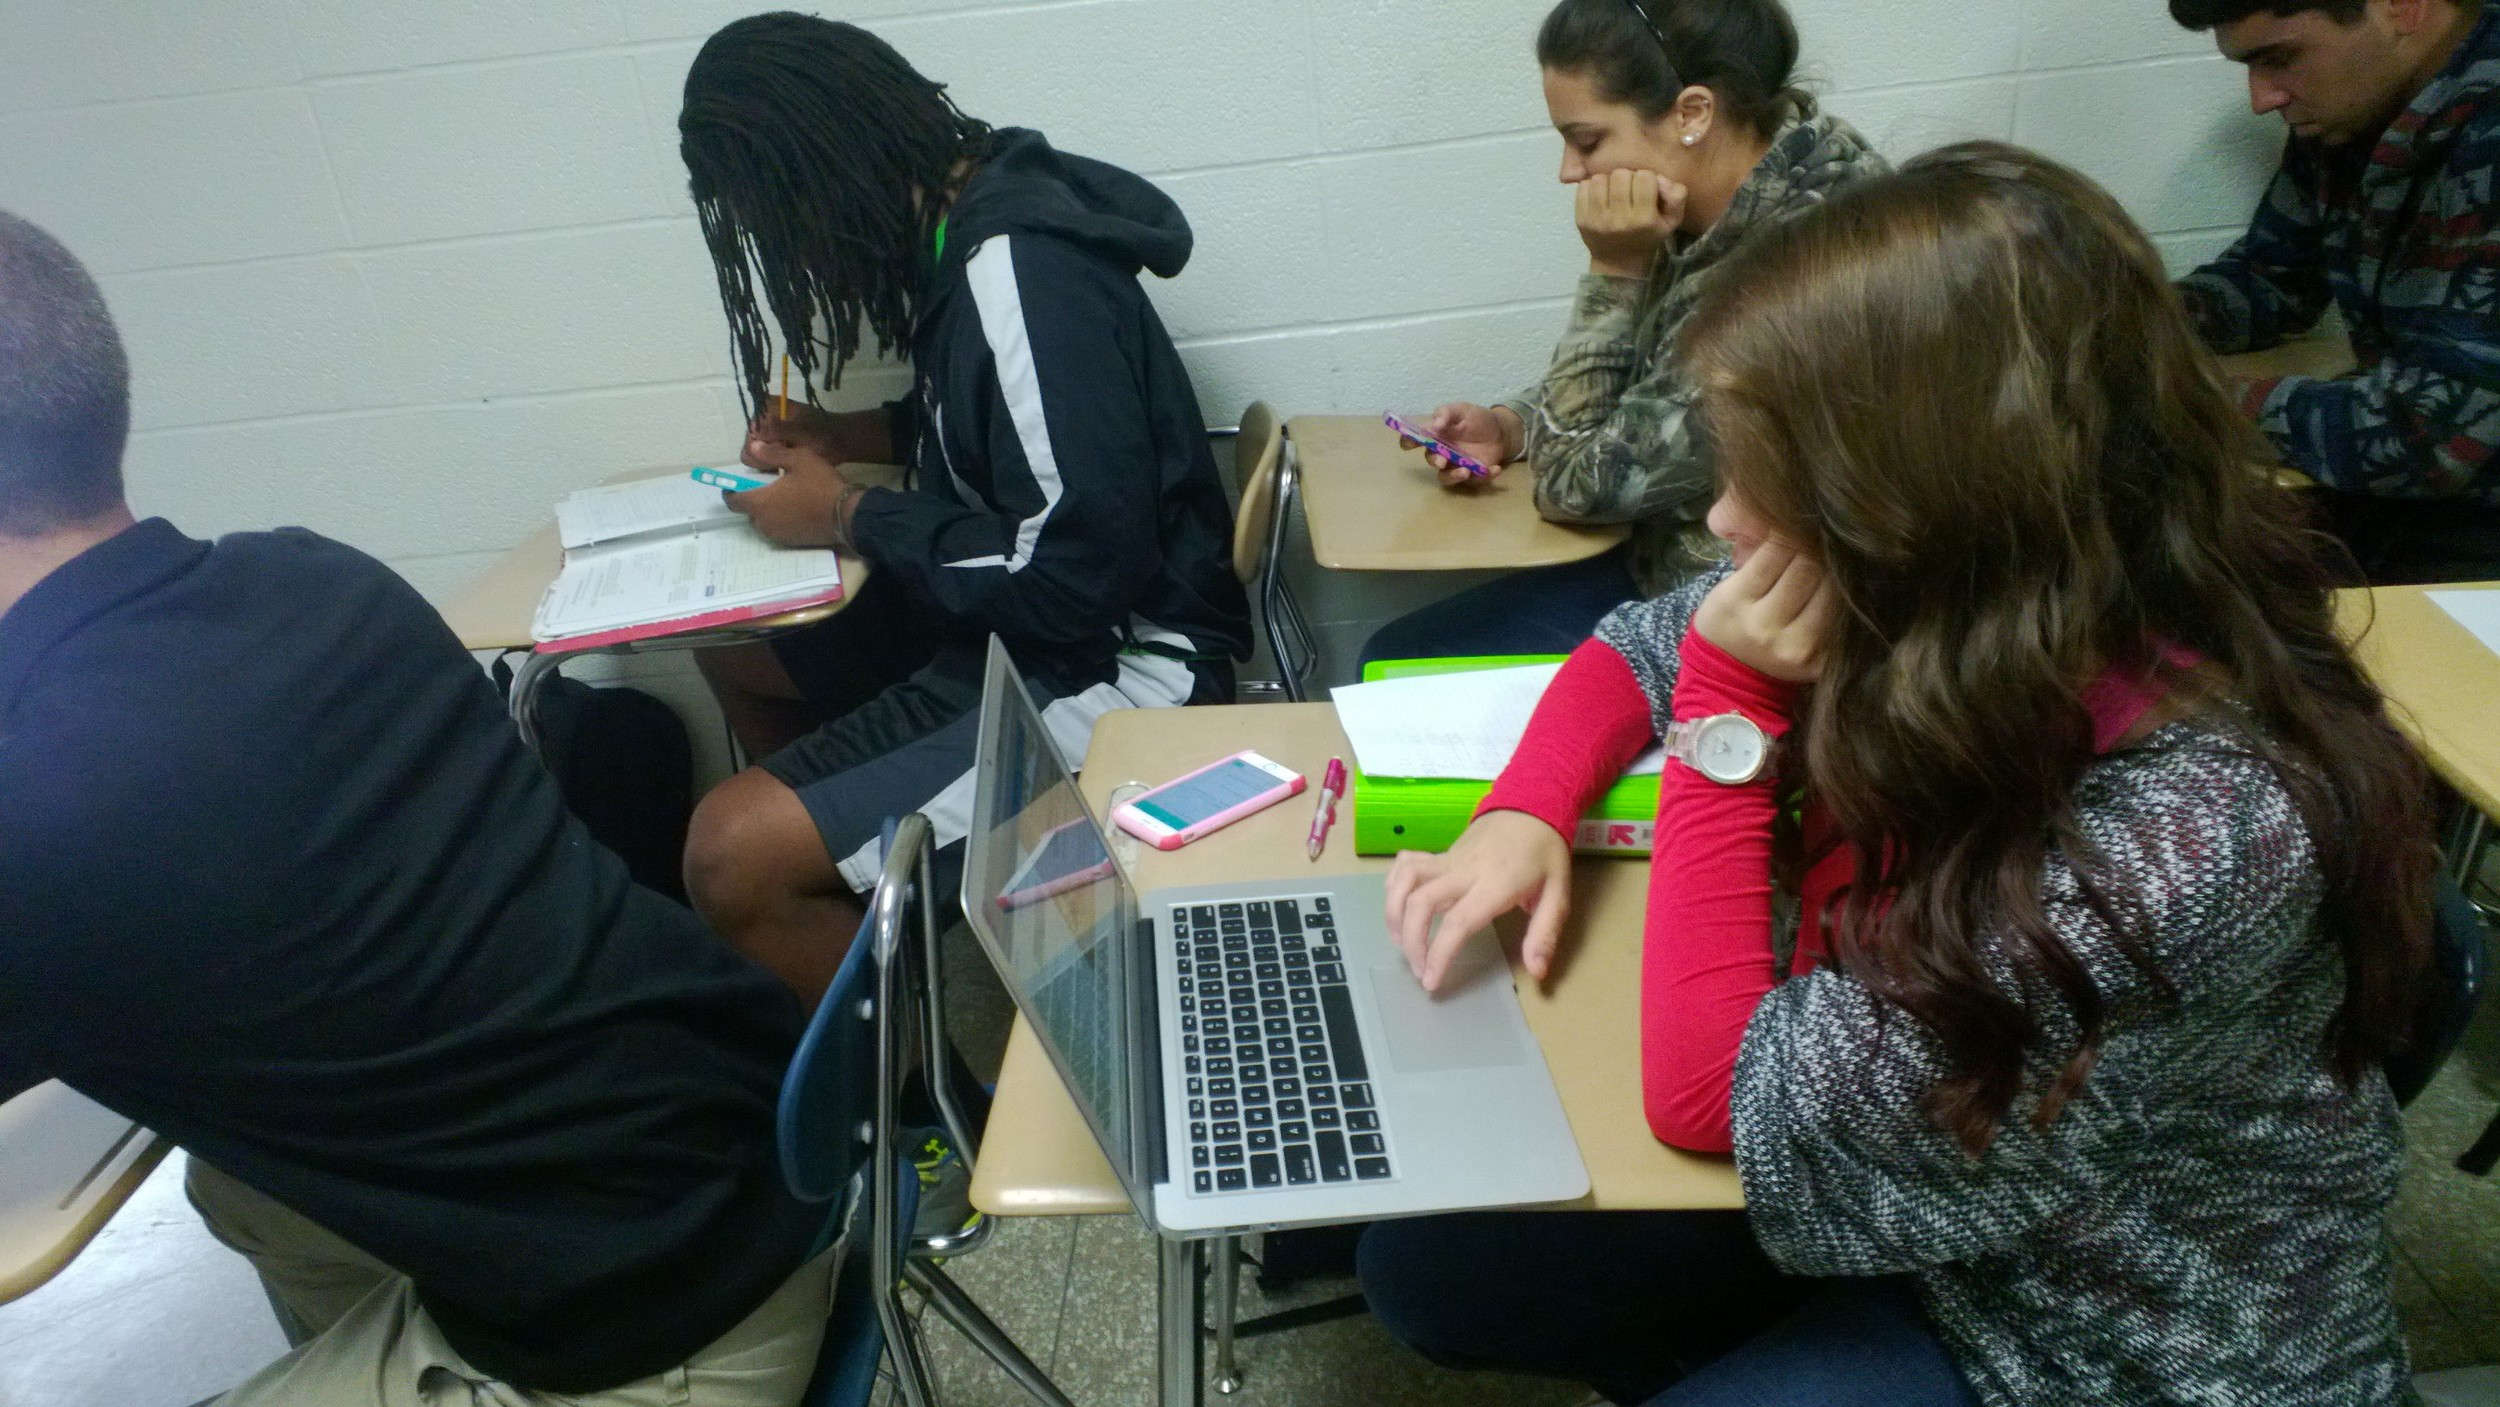 Freshman Danielle Berry (bottom right) sits on her computer in class.